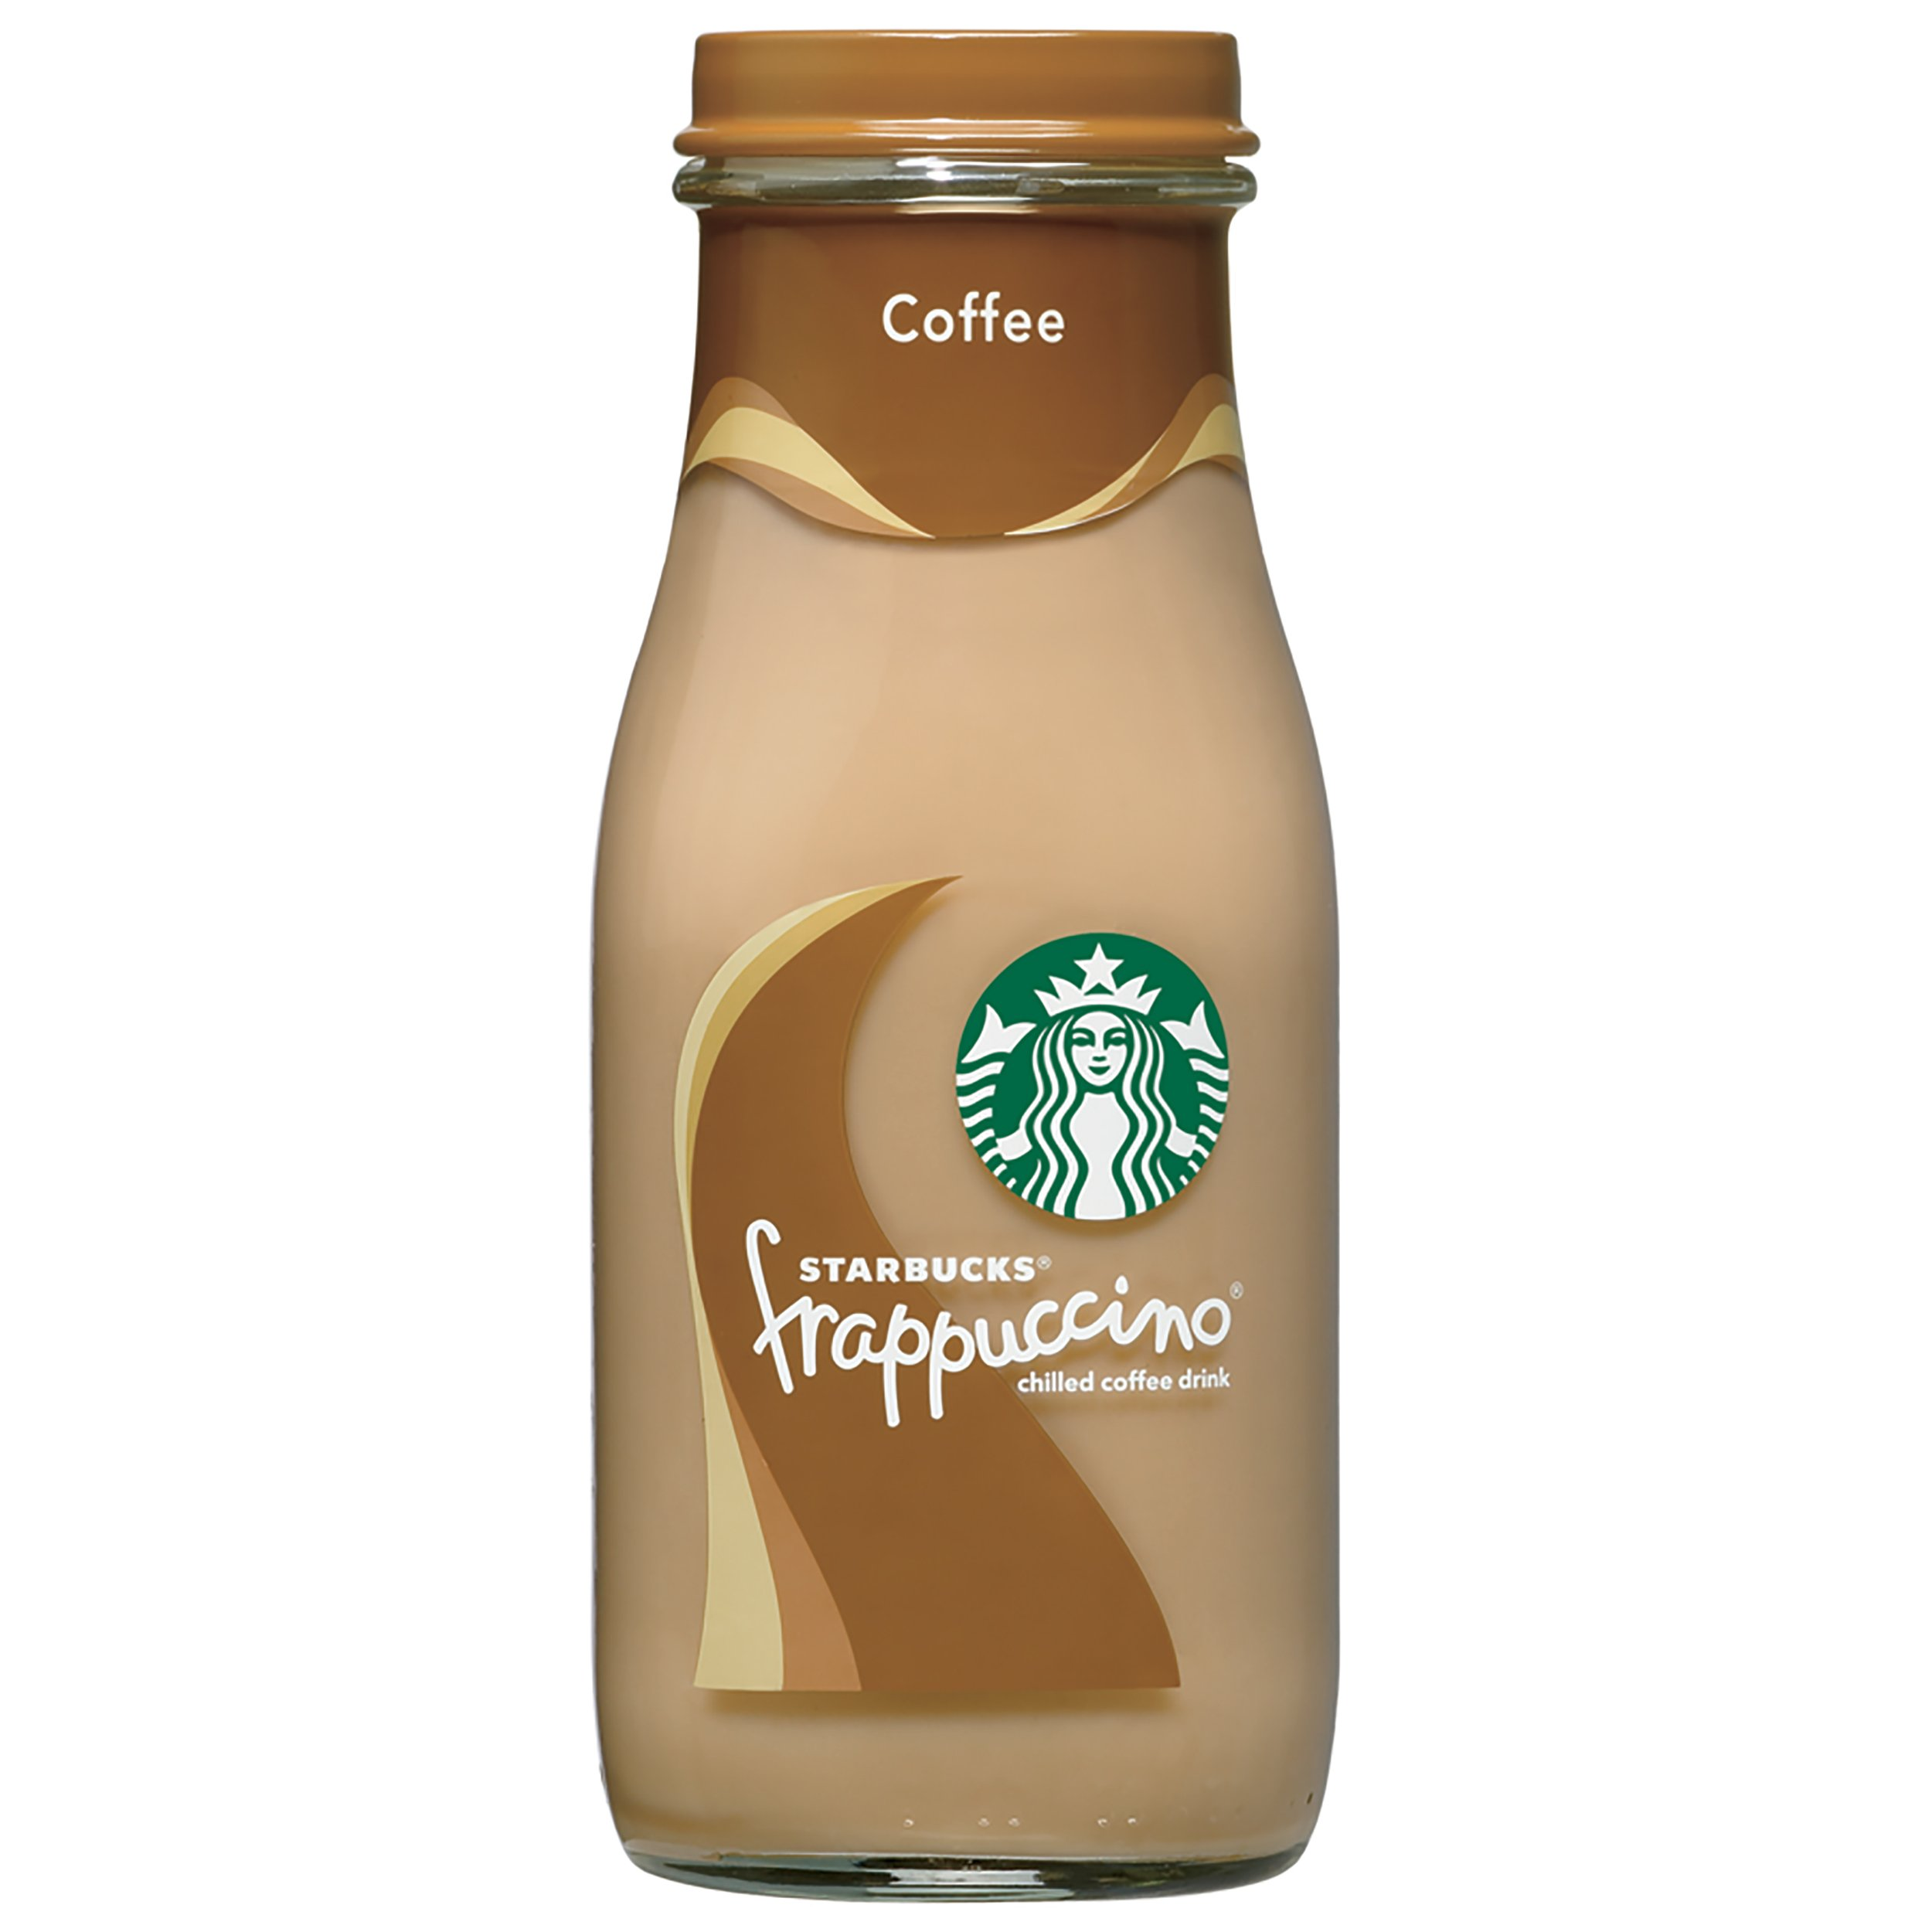 Starbucks Frappuccino, Coffee, 9.5 Ounce Glass Bottle, 12 Count